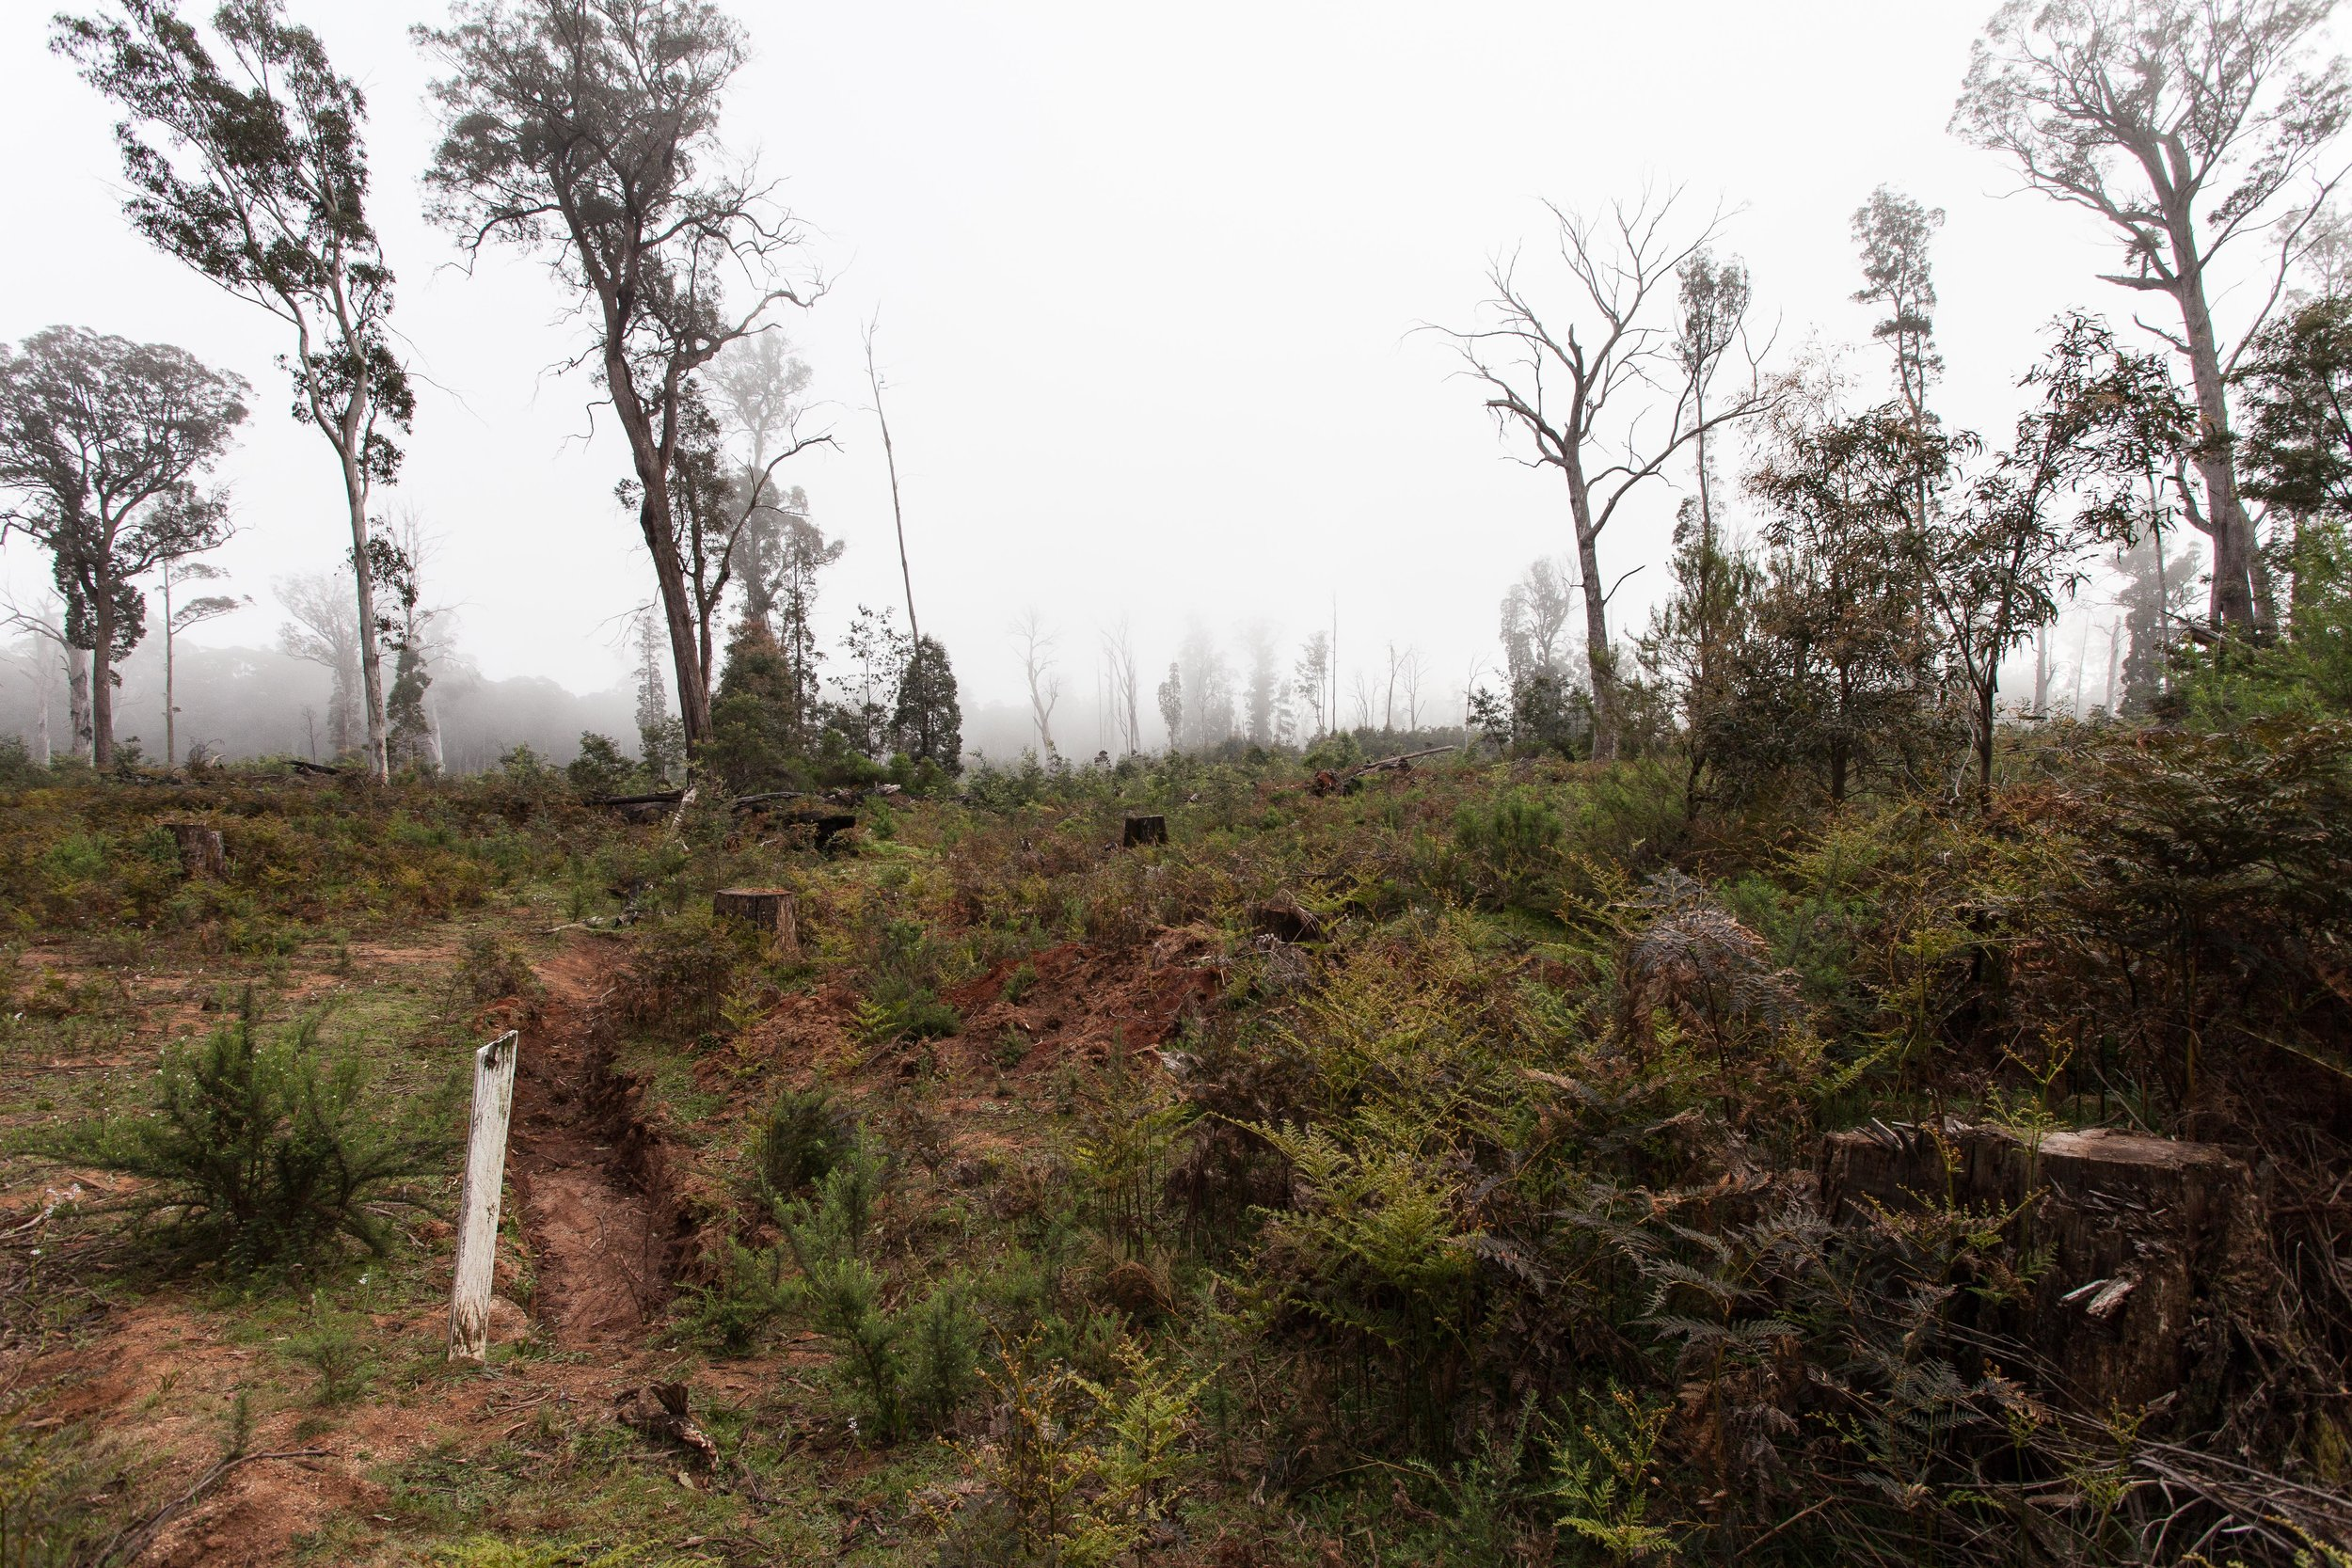 Logging is one of the major threats to Strathbogie State Forest and the fauna that inhabit it.  Image: Michael Flett